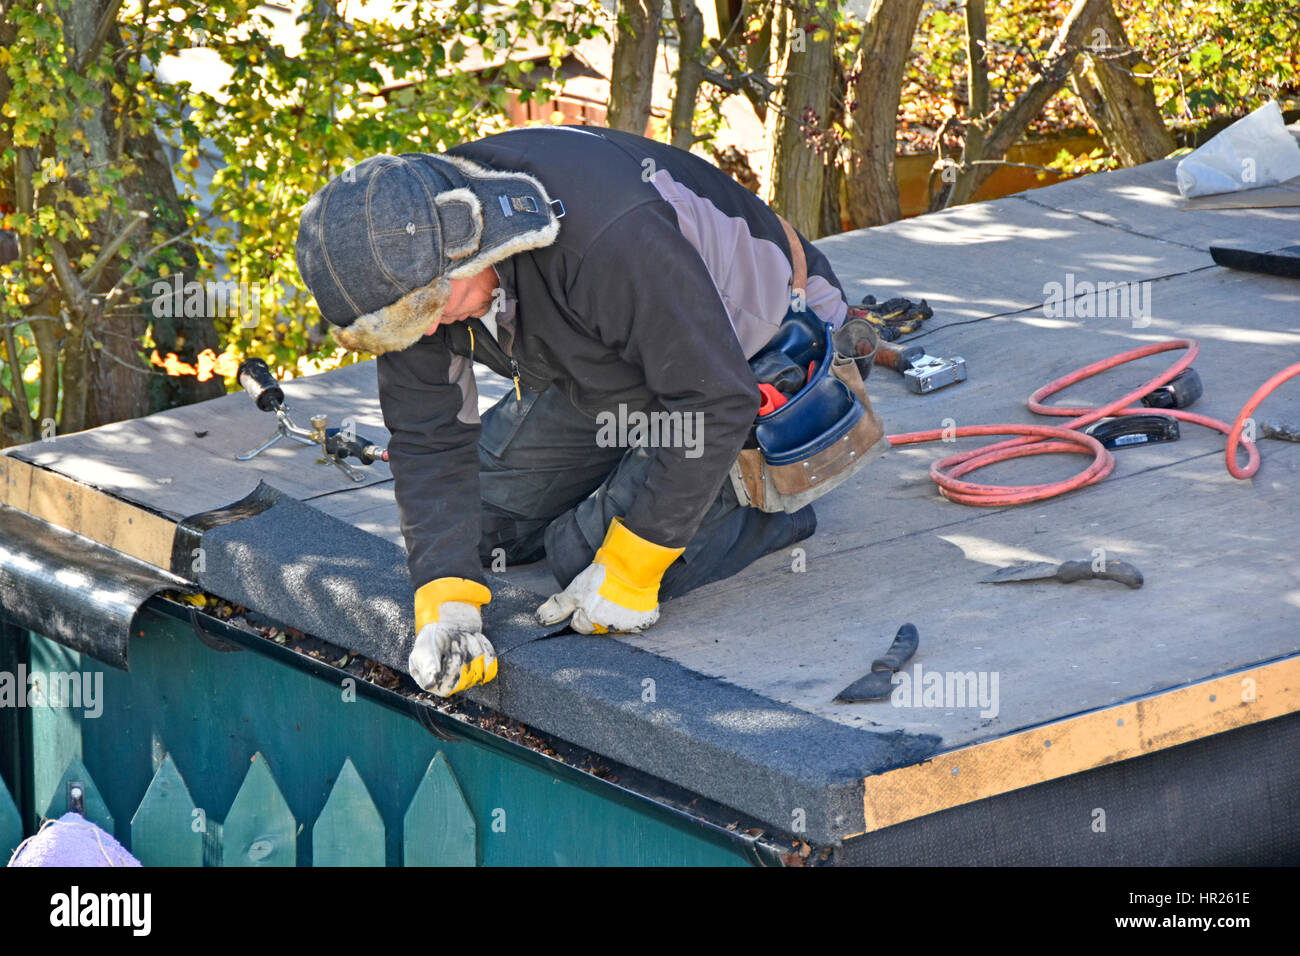 Flat Roof Felt High Resolution Stock Photography And Images Alamy